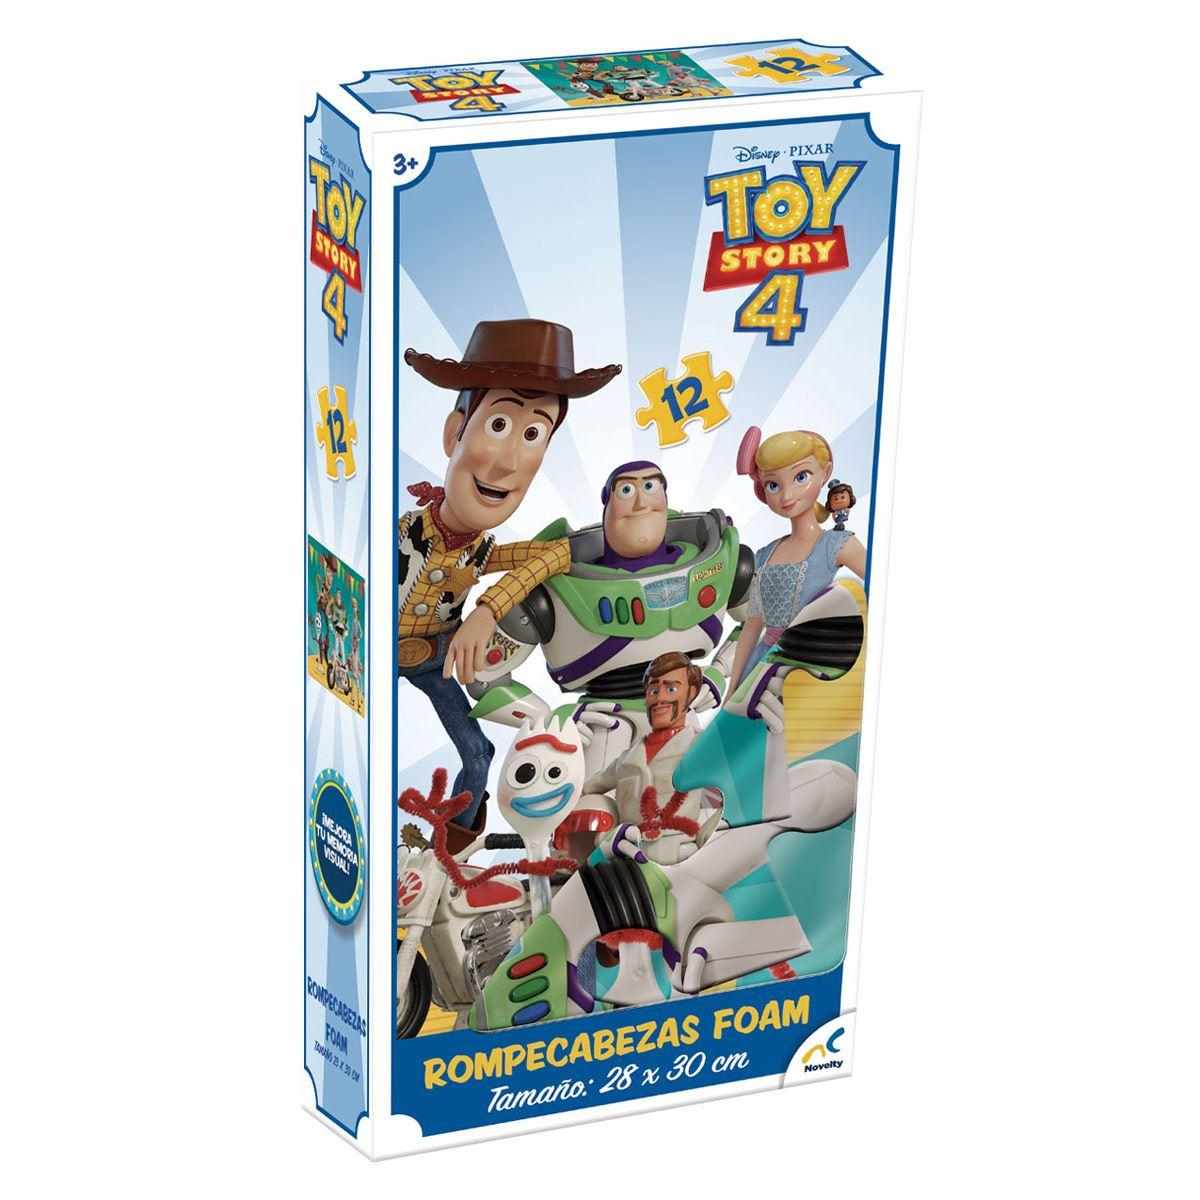 Rompecabezas de Toy Story 4 Novelty